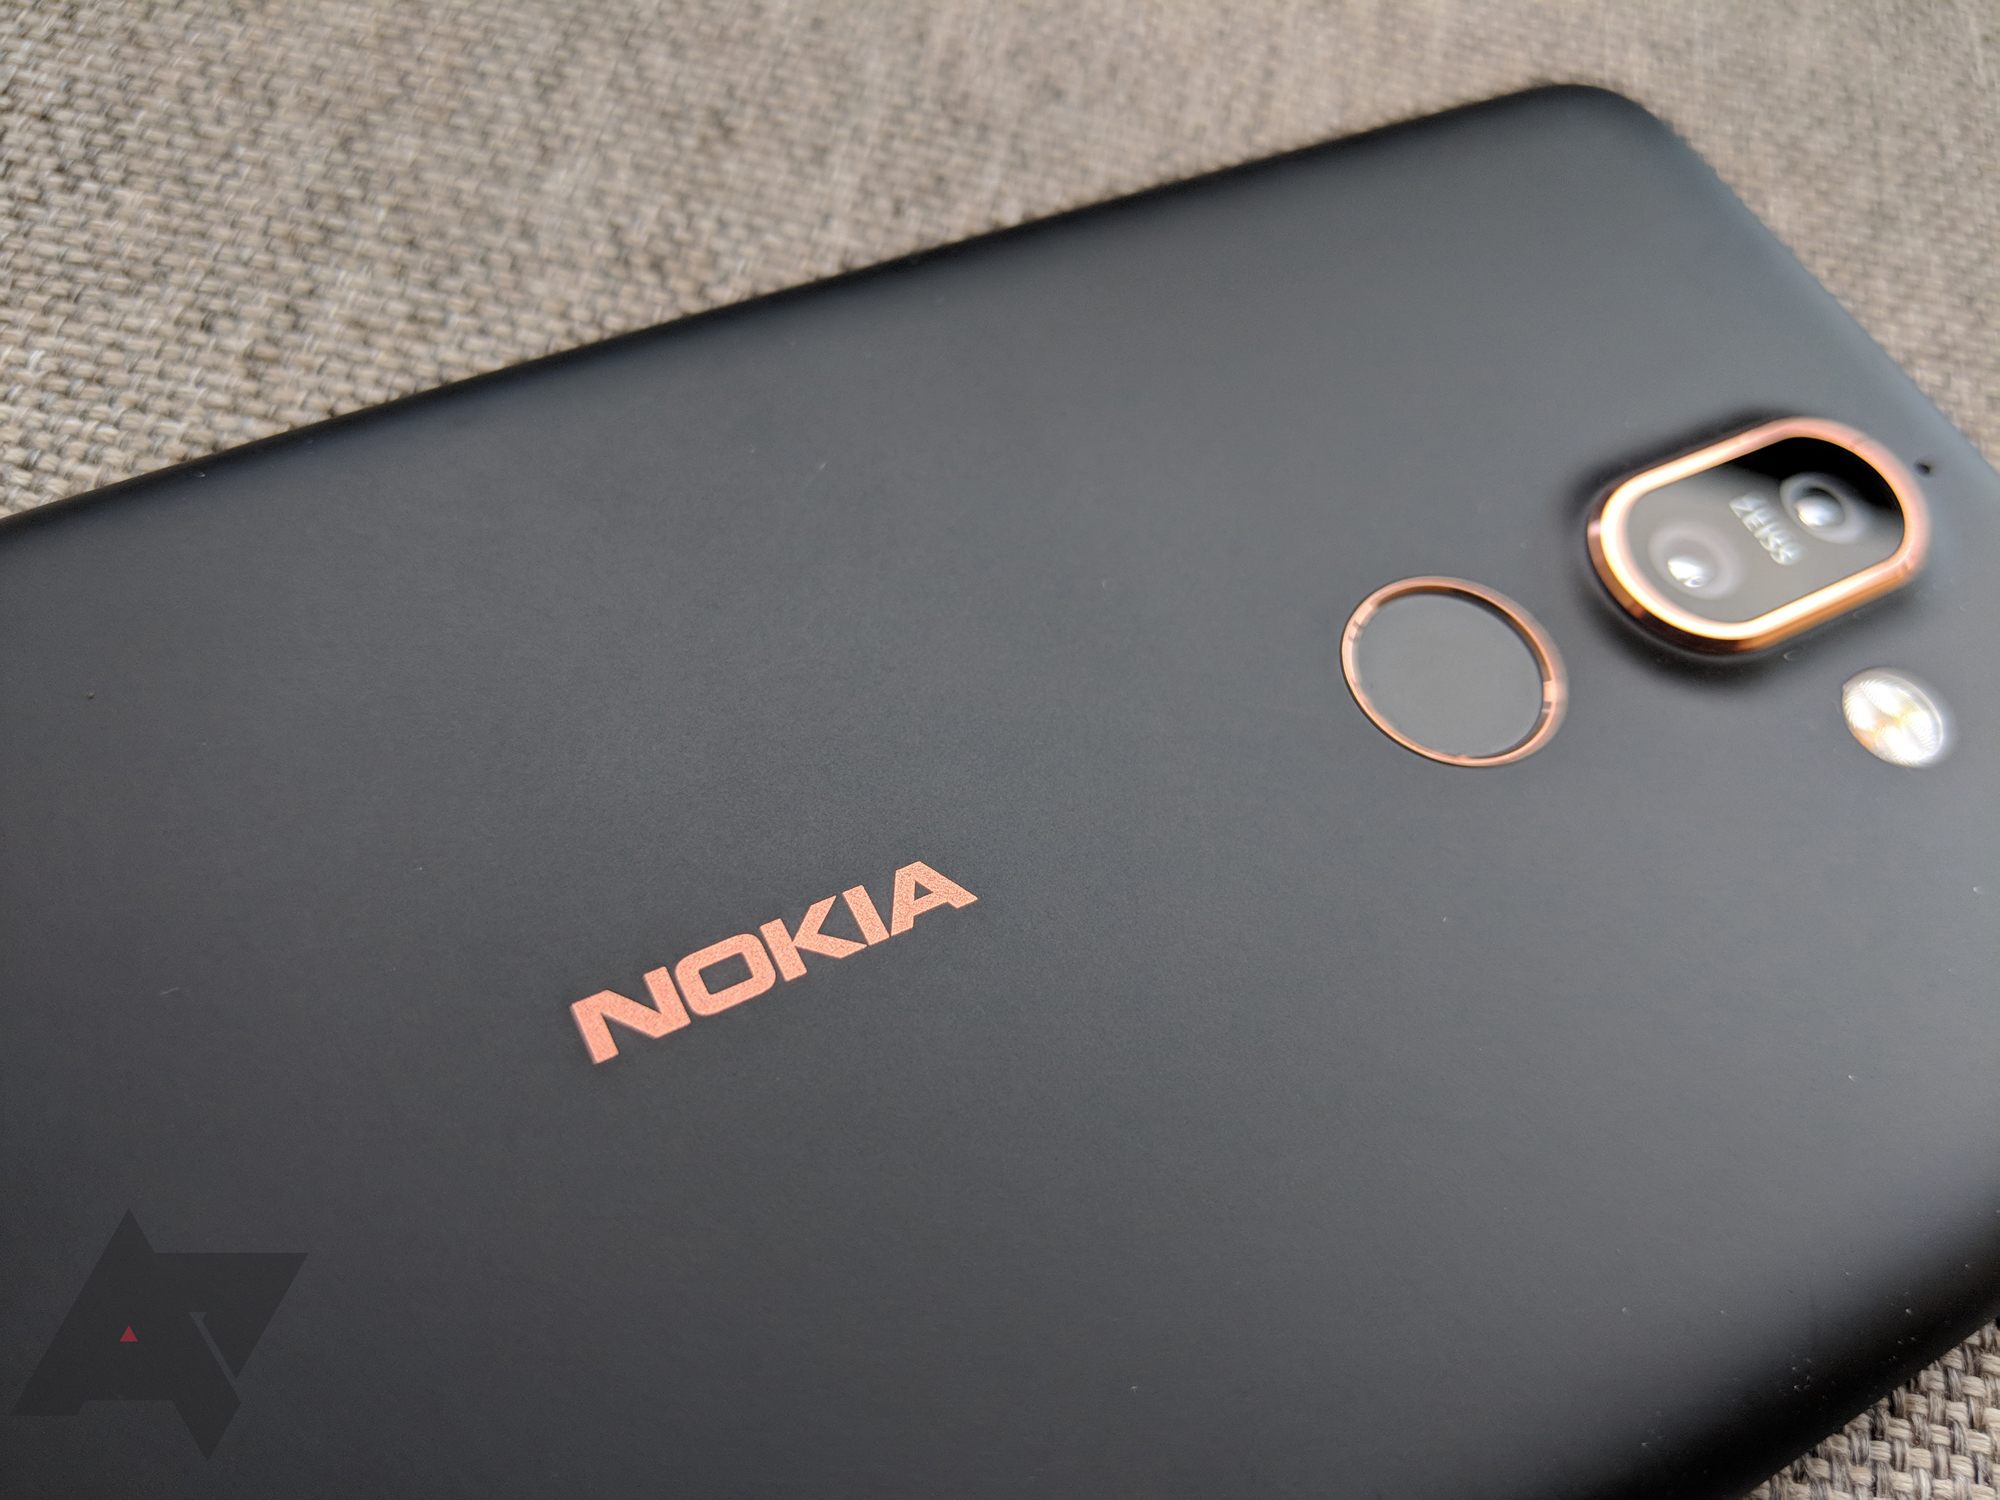 Android 9 Pie stable rolling out to the Nokia 7 Plus